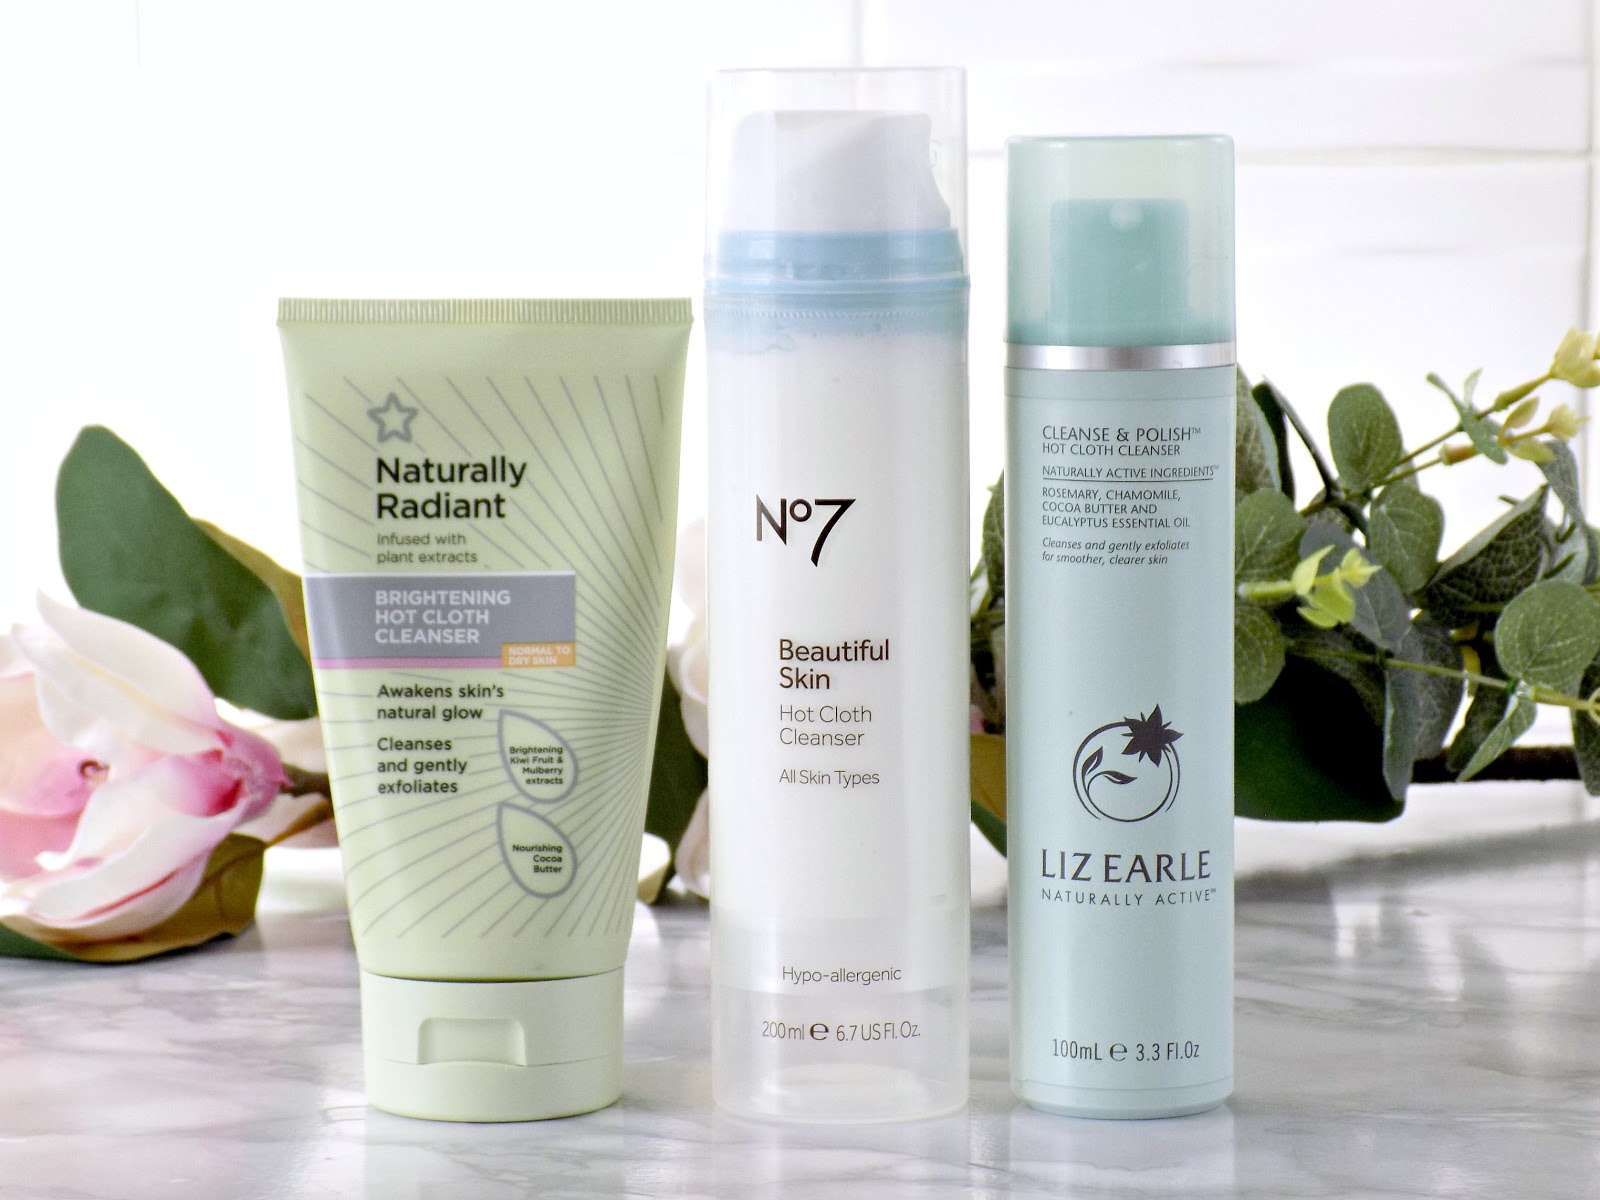 Superdrug Brightening Hot Cloth Cleanser, No7 Hot Cloth Cleanser, Liz Earle Cleanse & Polish Clth Cleanser